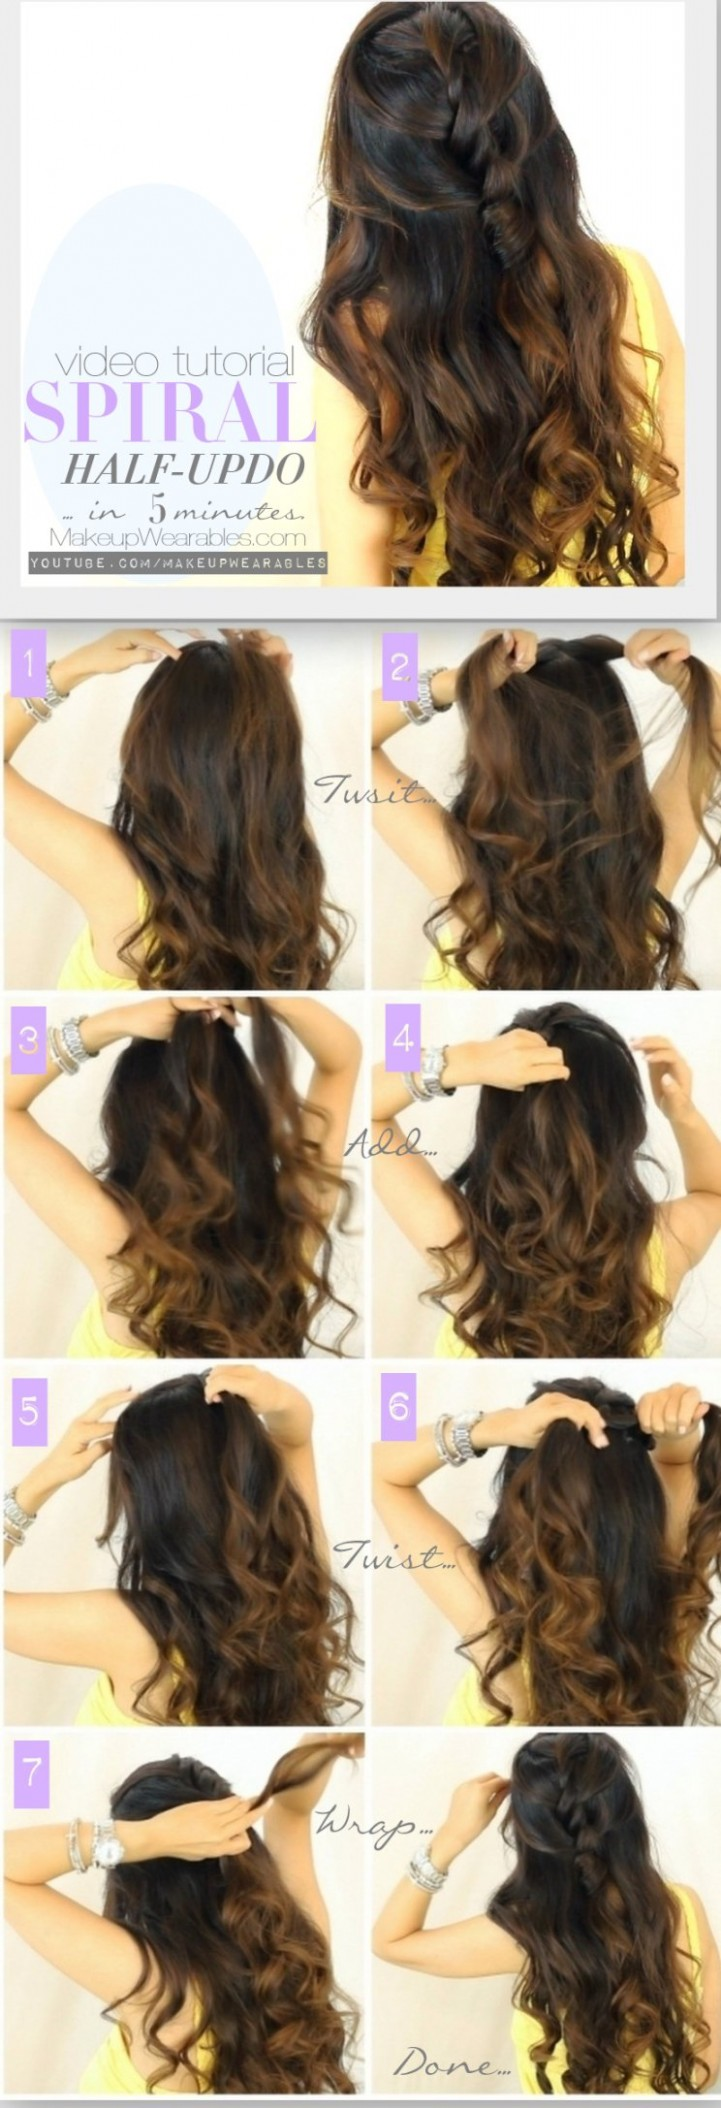 Hairstyles Ideas 12: Easy Formal Hairstyles Down Prom Hairstyles For Medium Hair Down